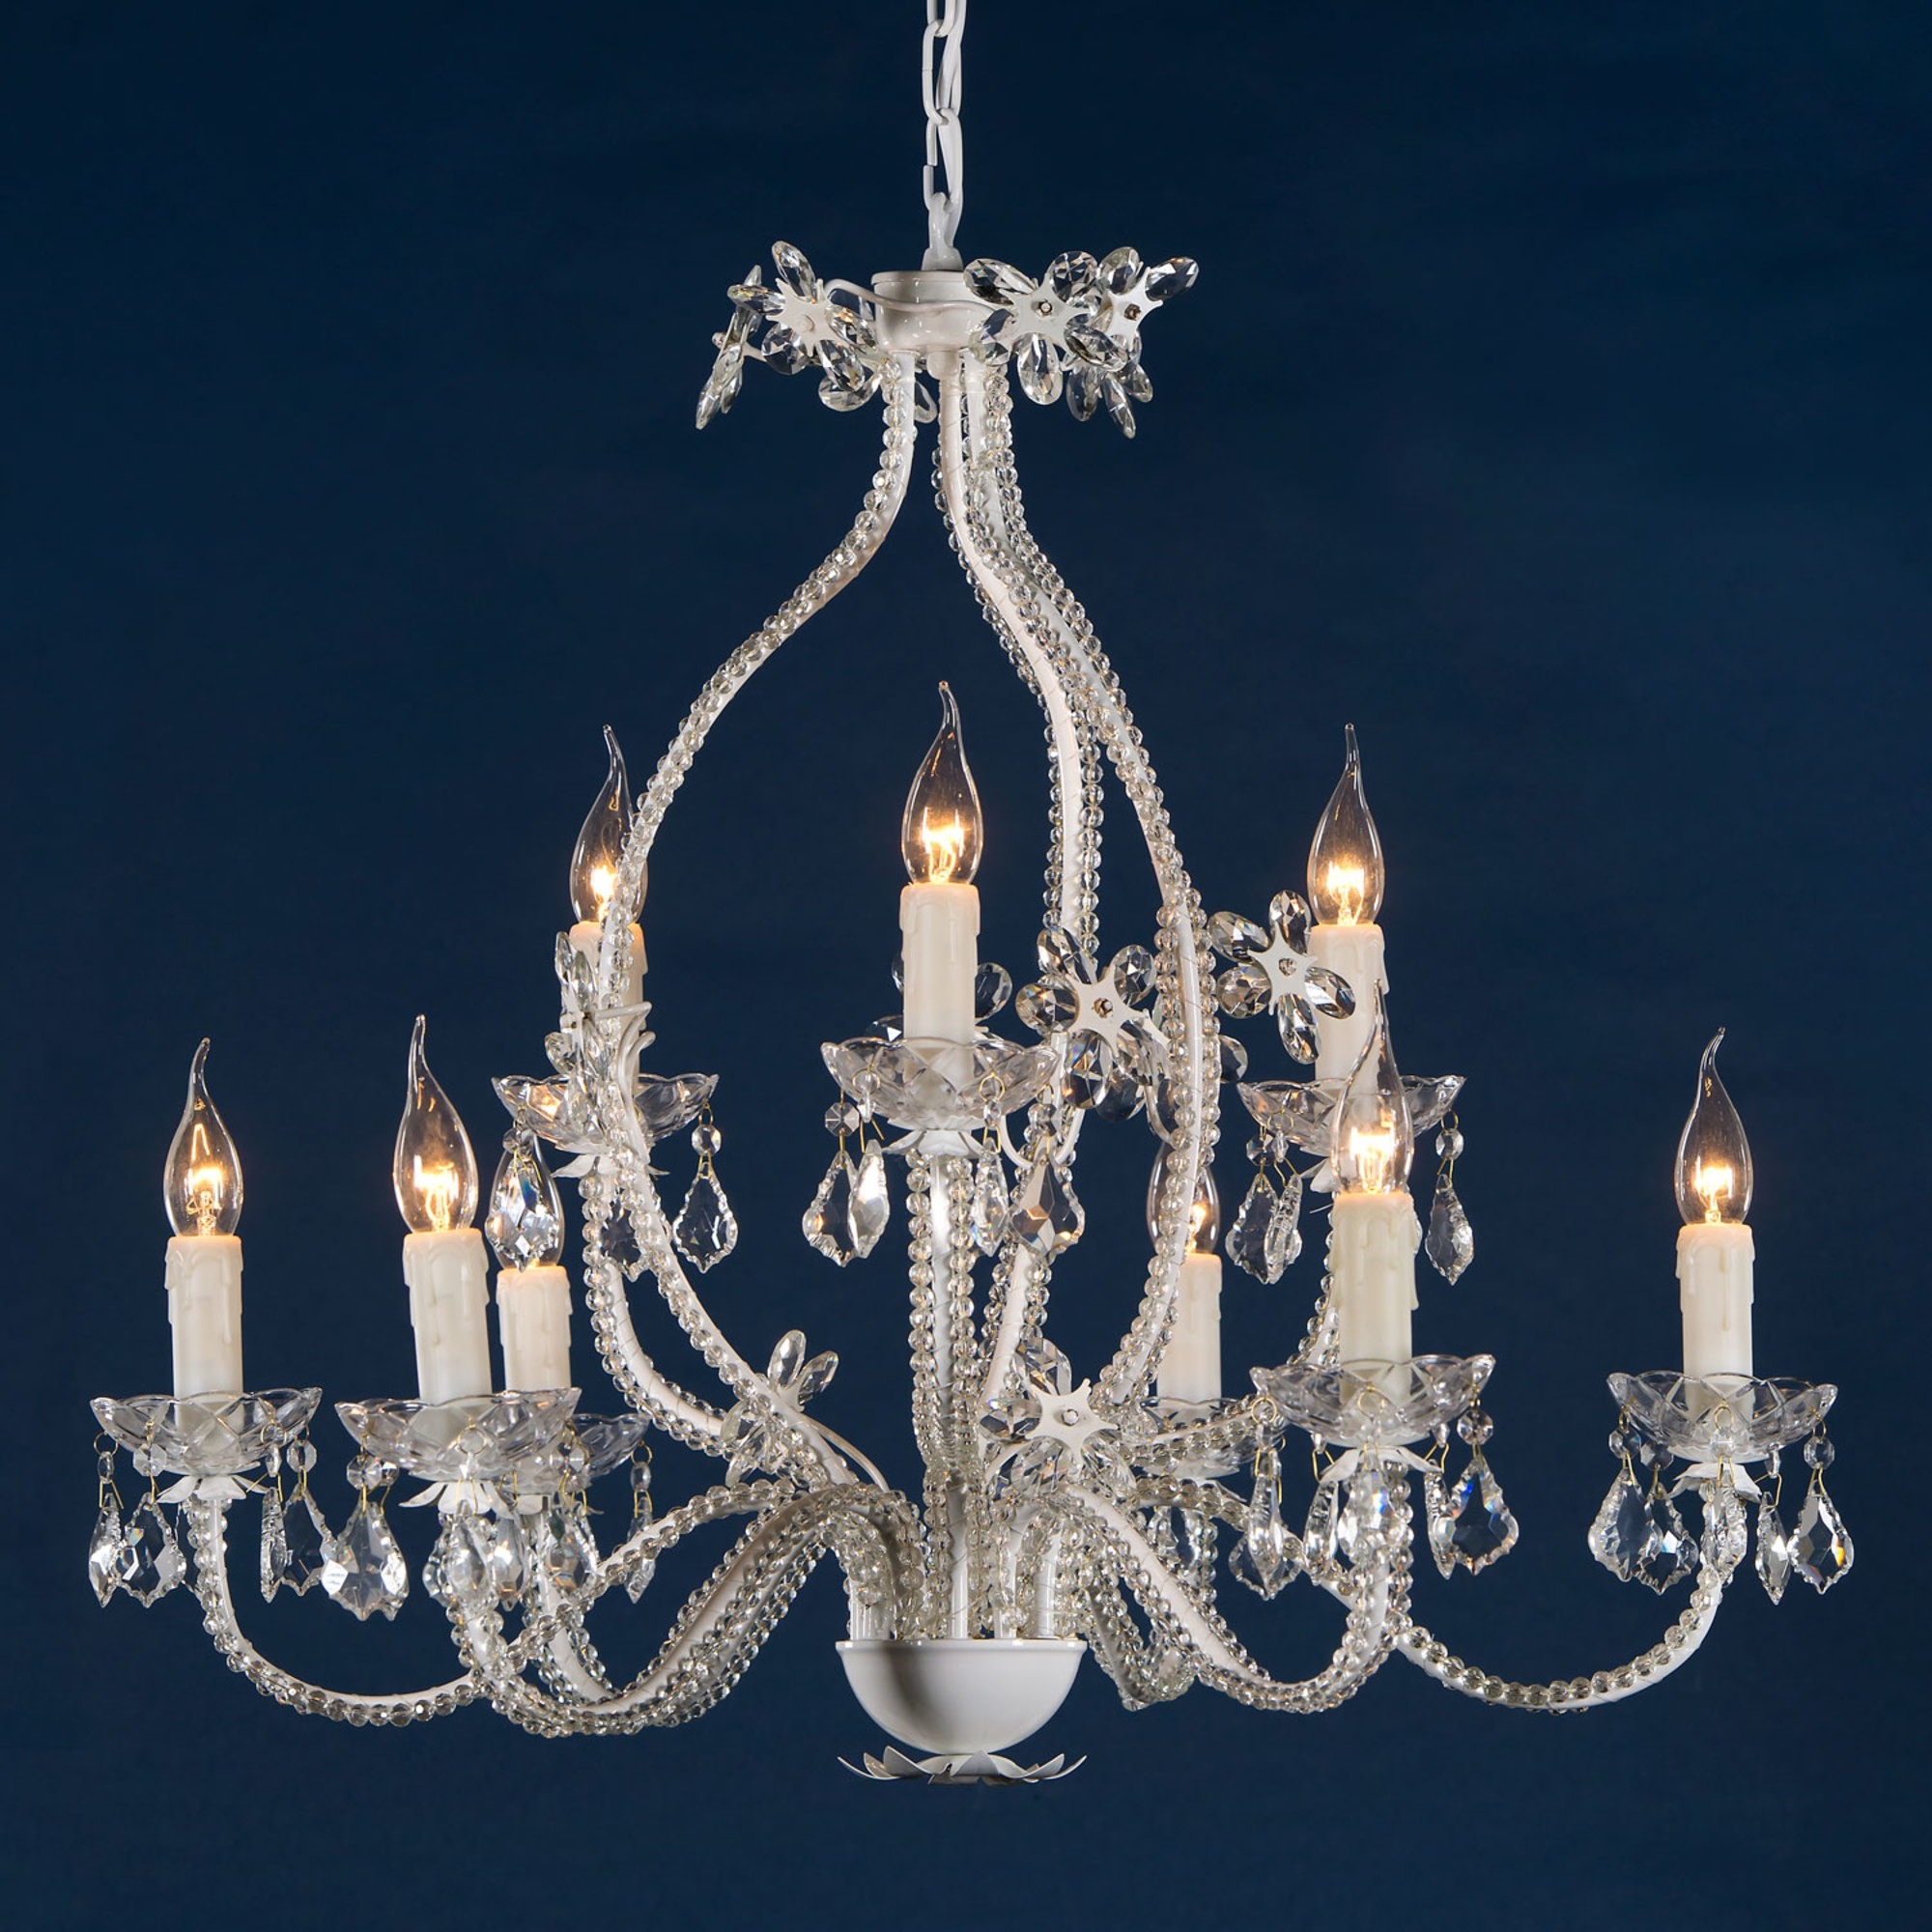 9 Light Chandelier - White and Clear